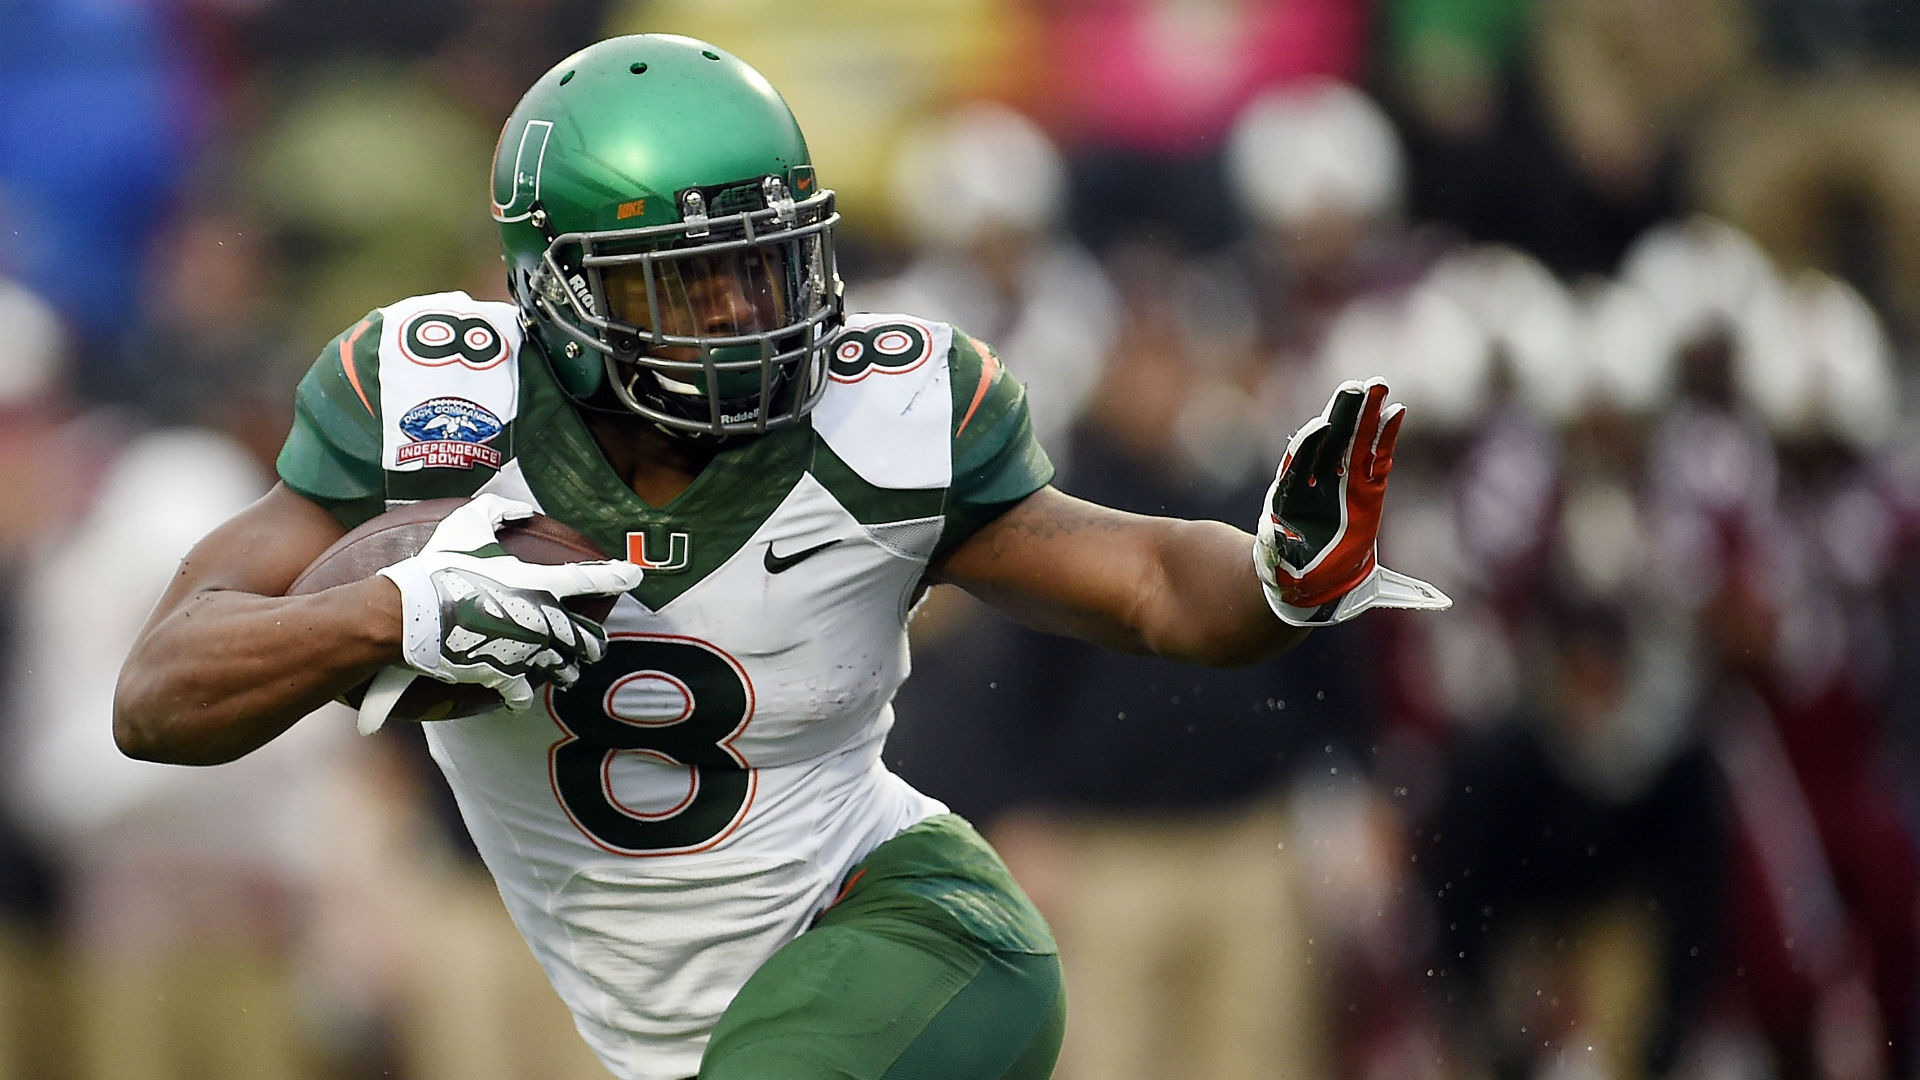 NFL Rookie Scouting Report: Duke Johnson, RB, Browns